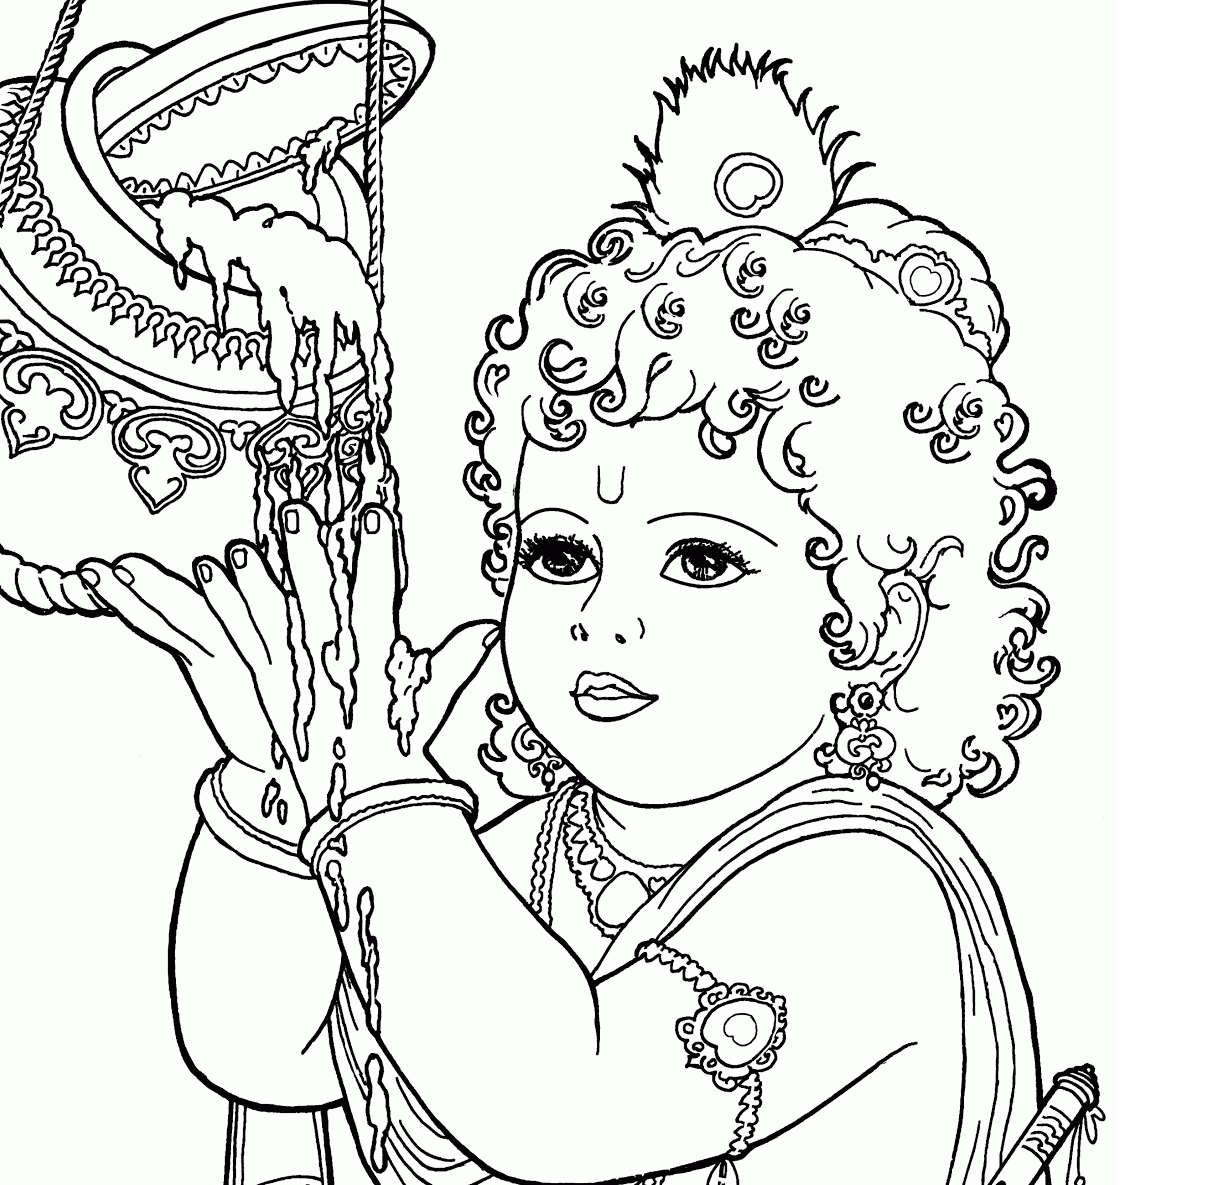 1232x1185 Colour Drawing Free Wallpaper Lord Baby Krishna Coloring Drawing